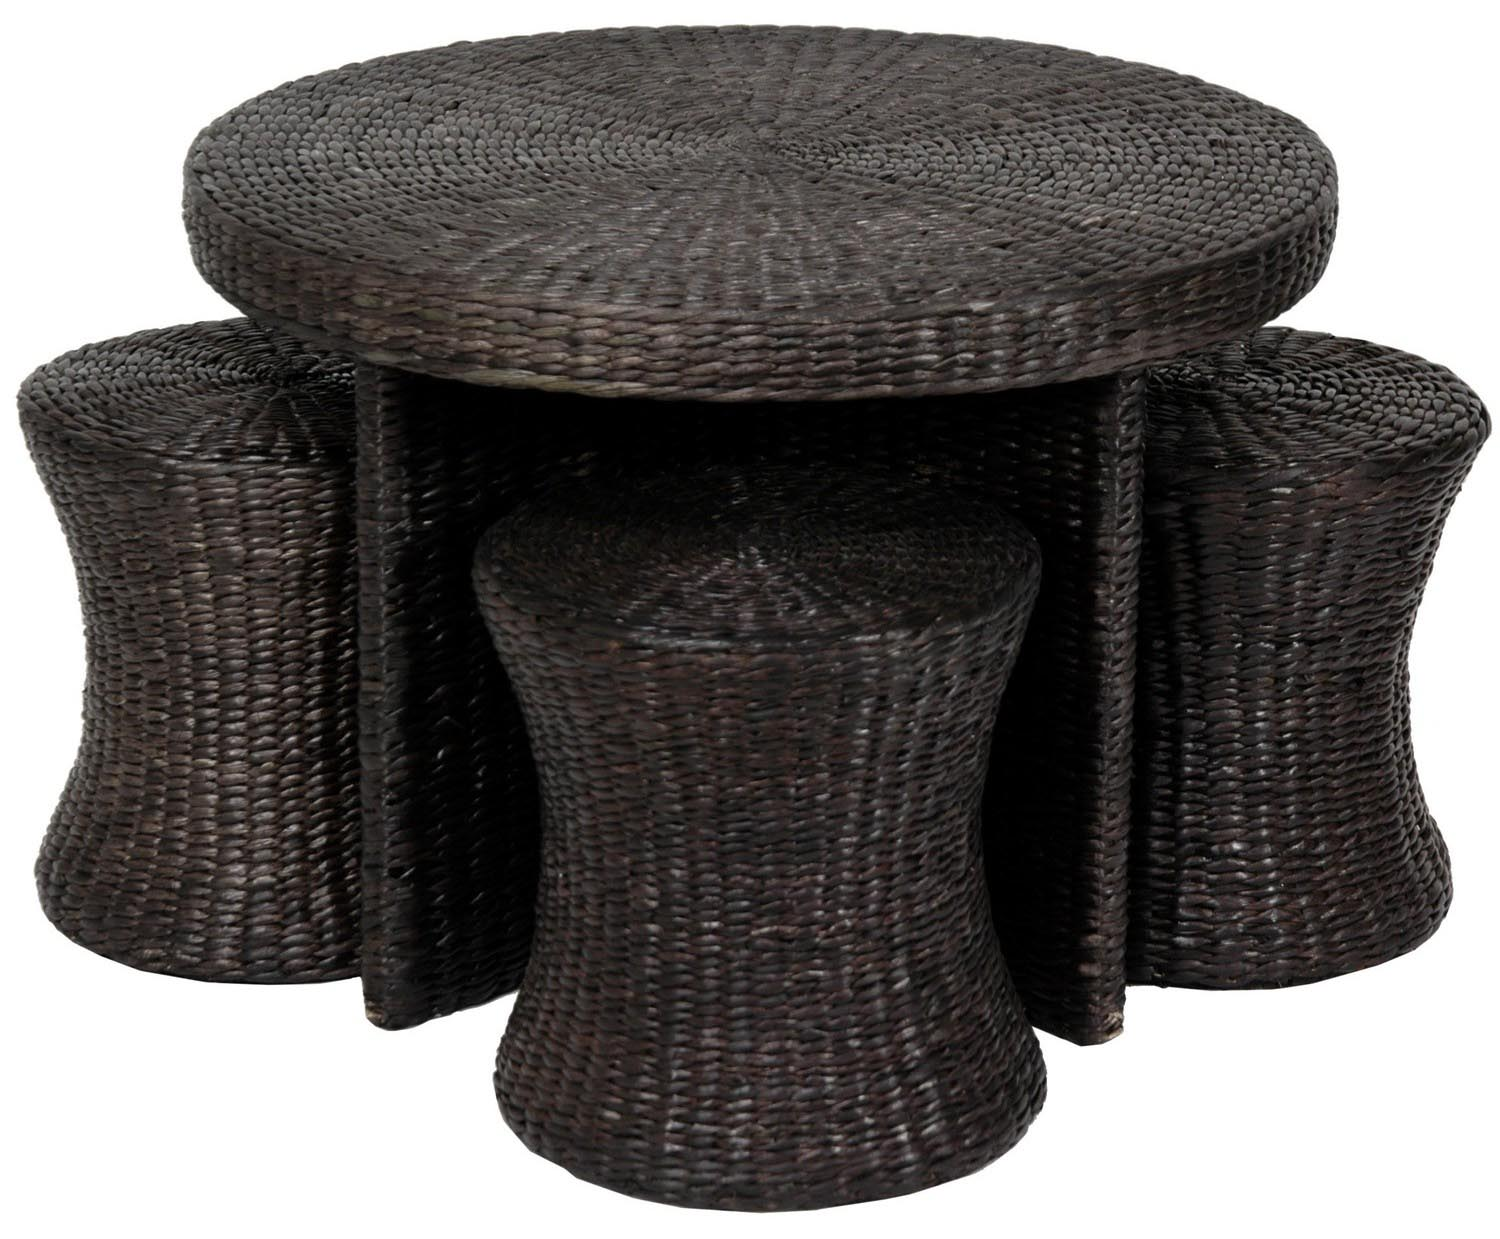 Rattan Coffee Table With Stools Design Ideas